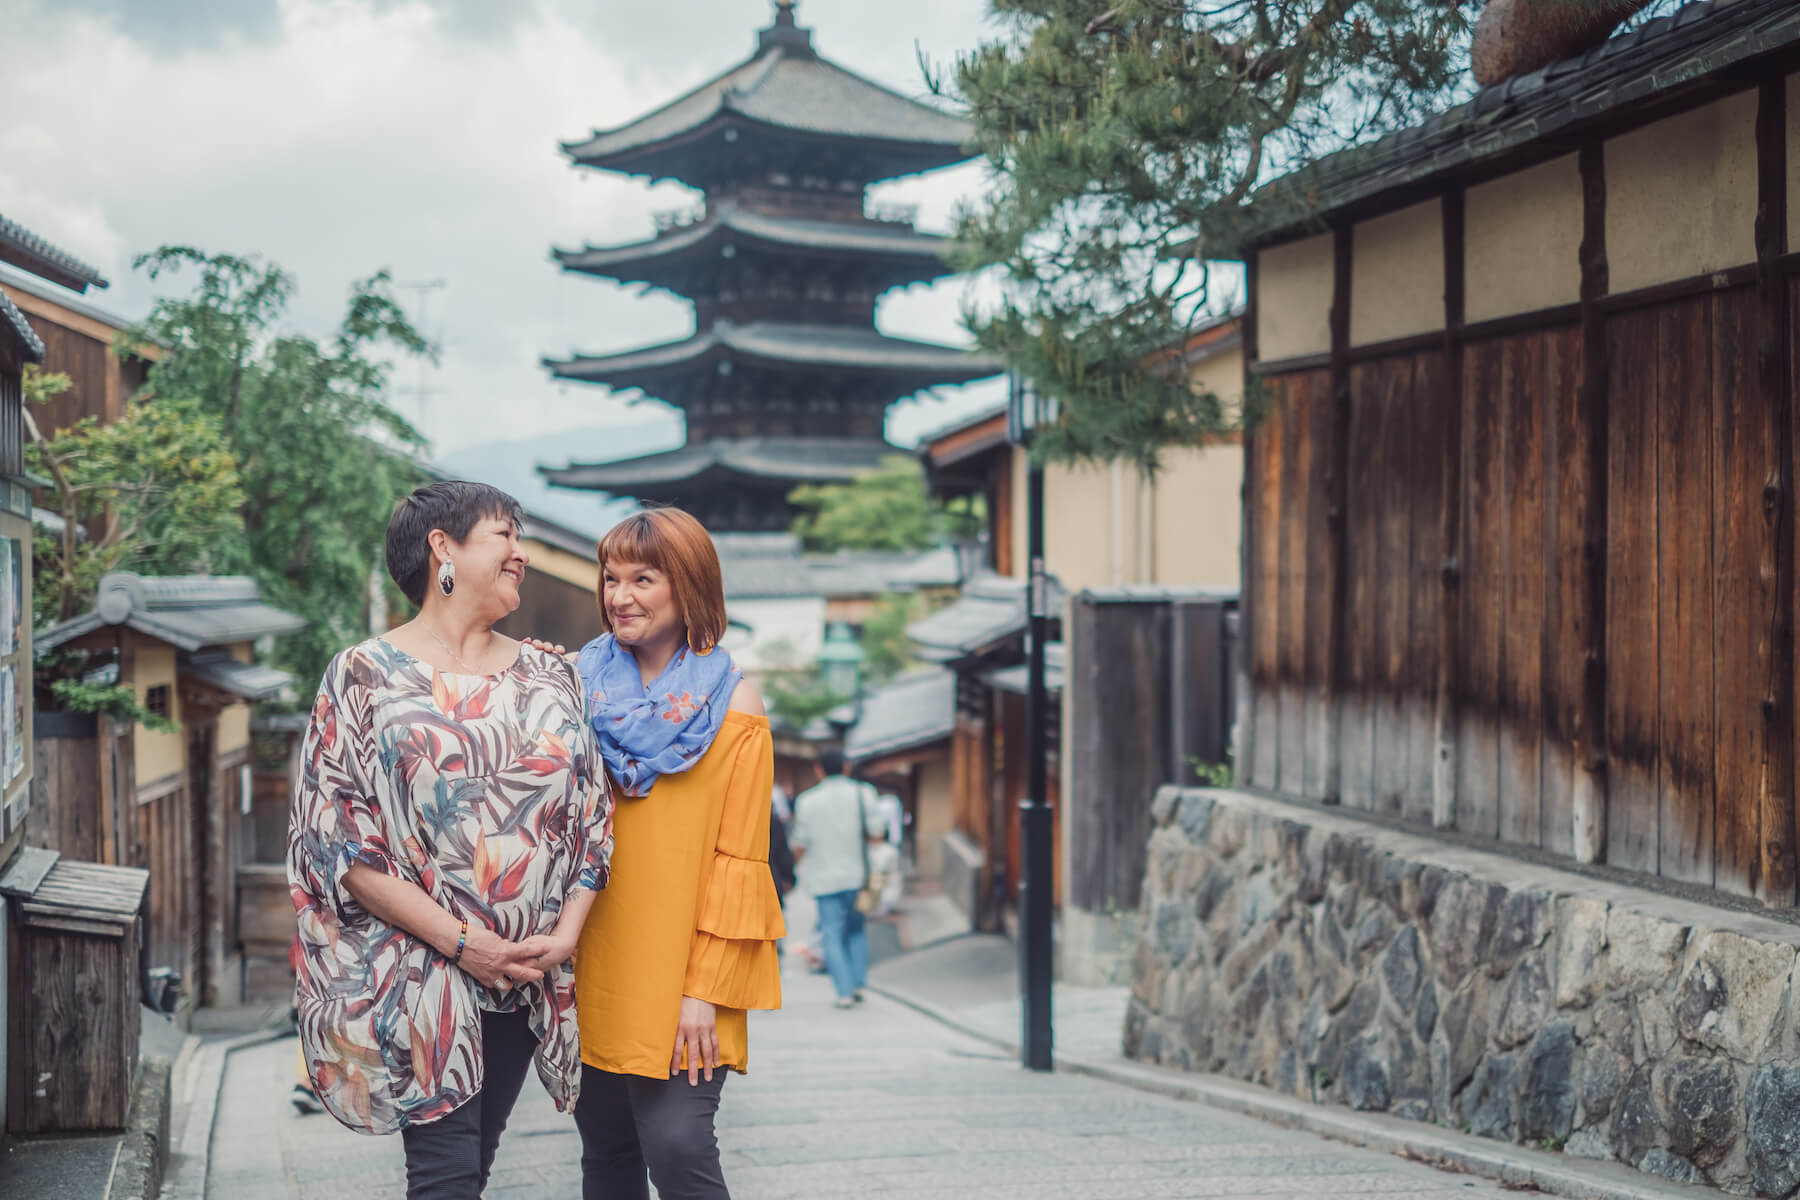 Girlfriends standing in front of temple in Kyoto Japan